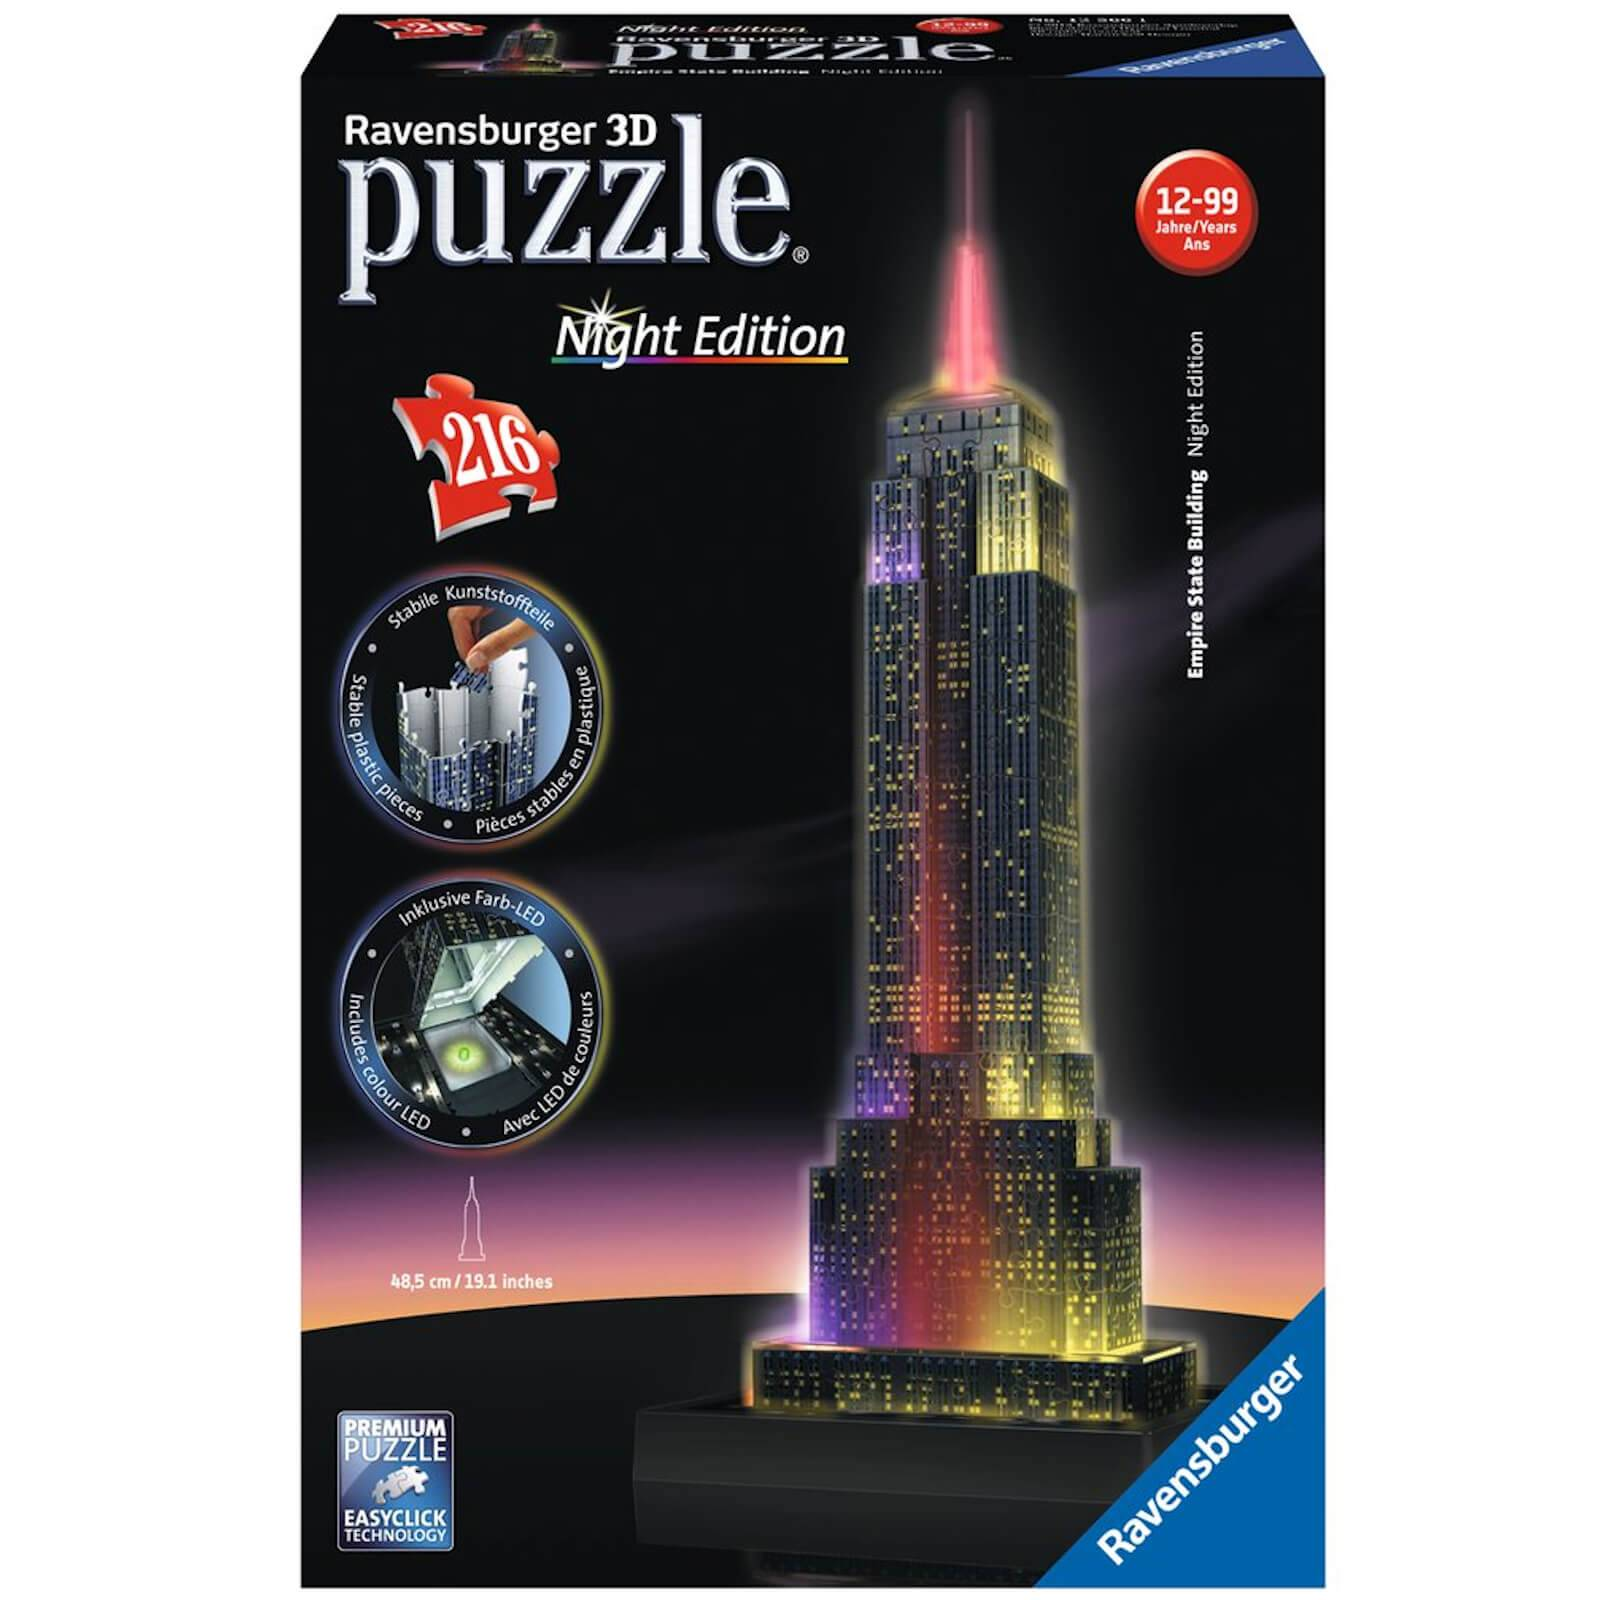 Ravensburger Empire State Building Night Edition 3D Jigsaw Puzzle (216 Pieces)